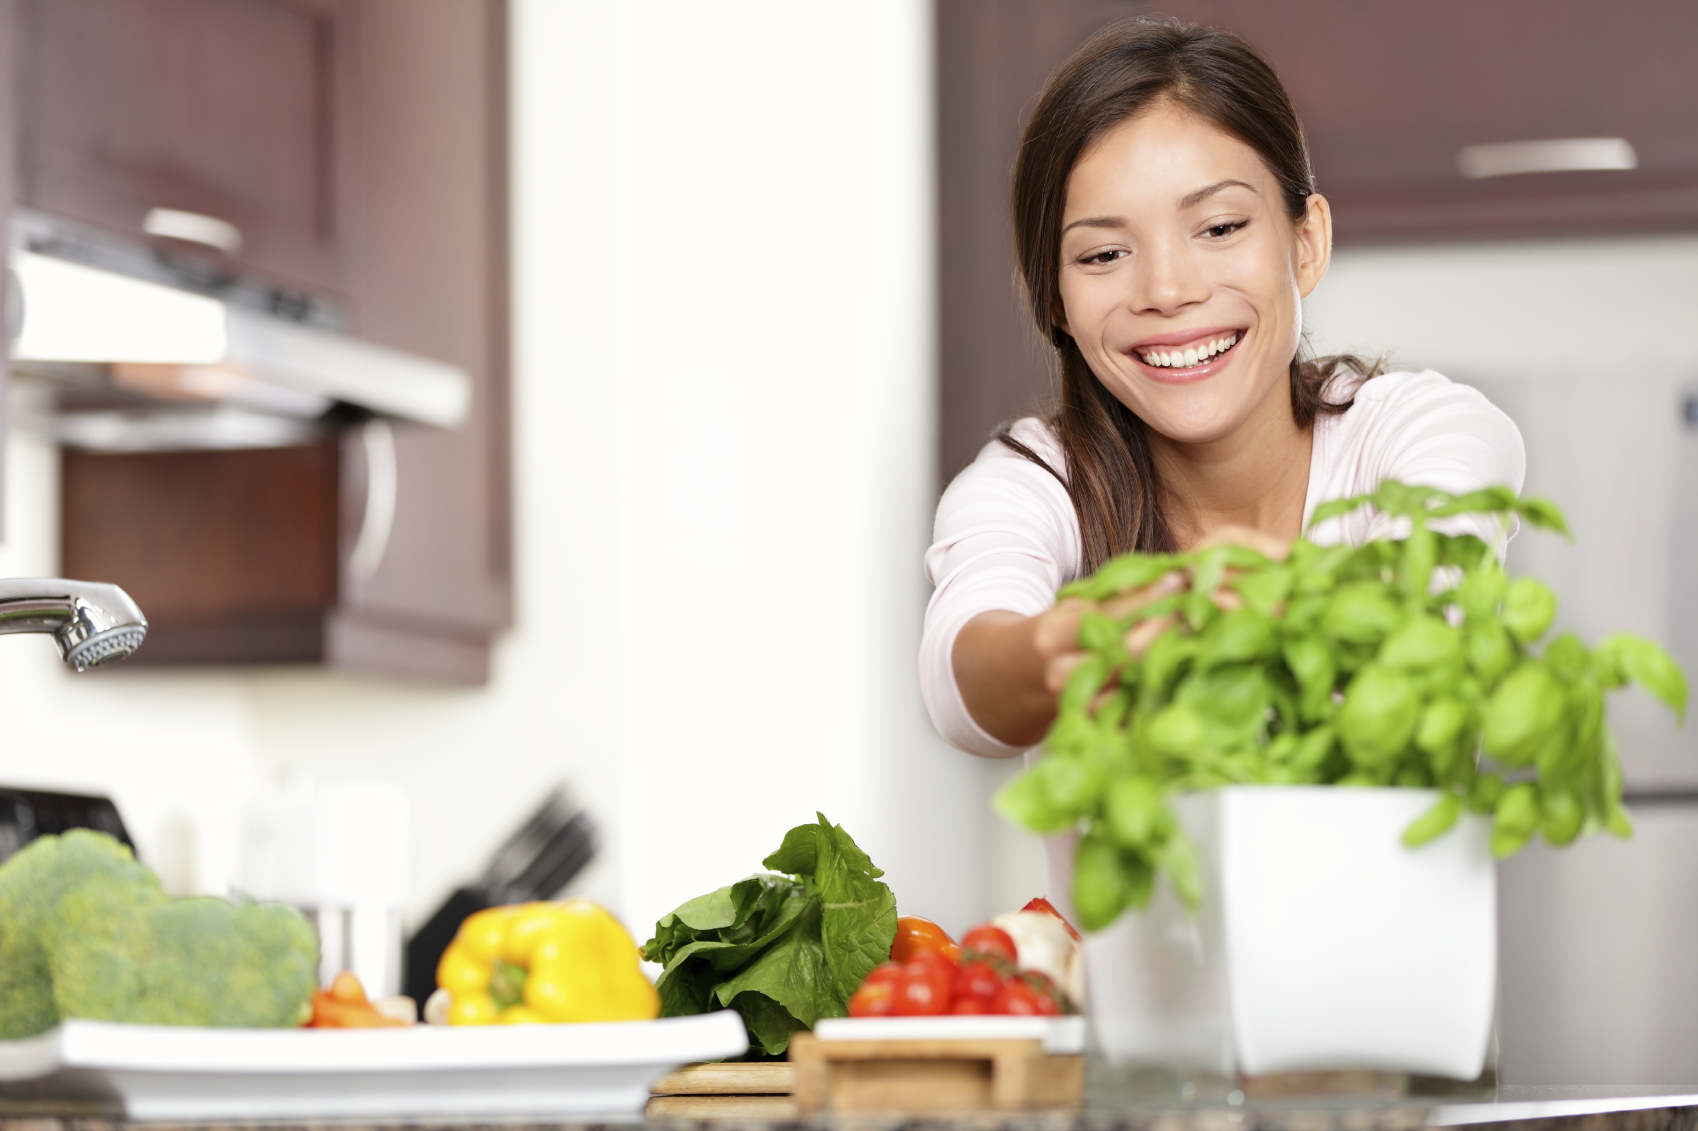 Woman making food in kitchen